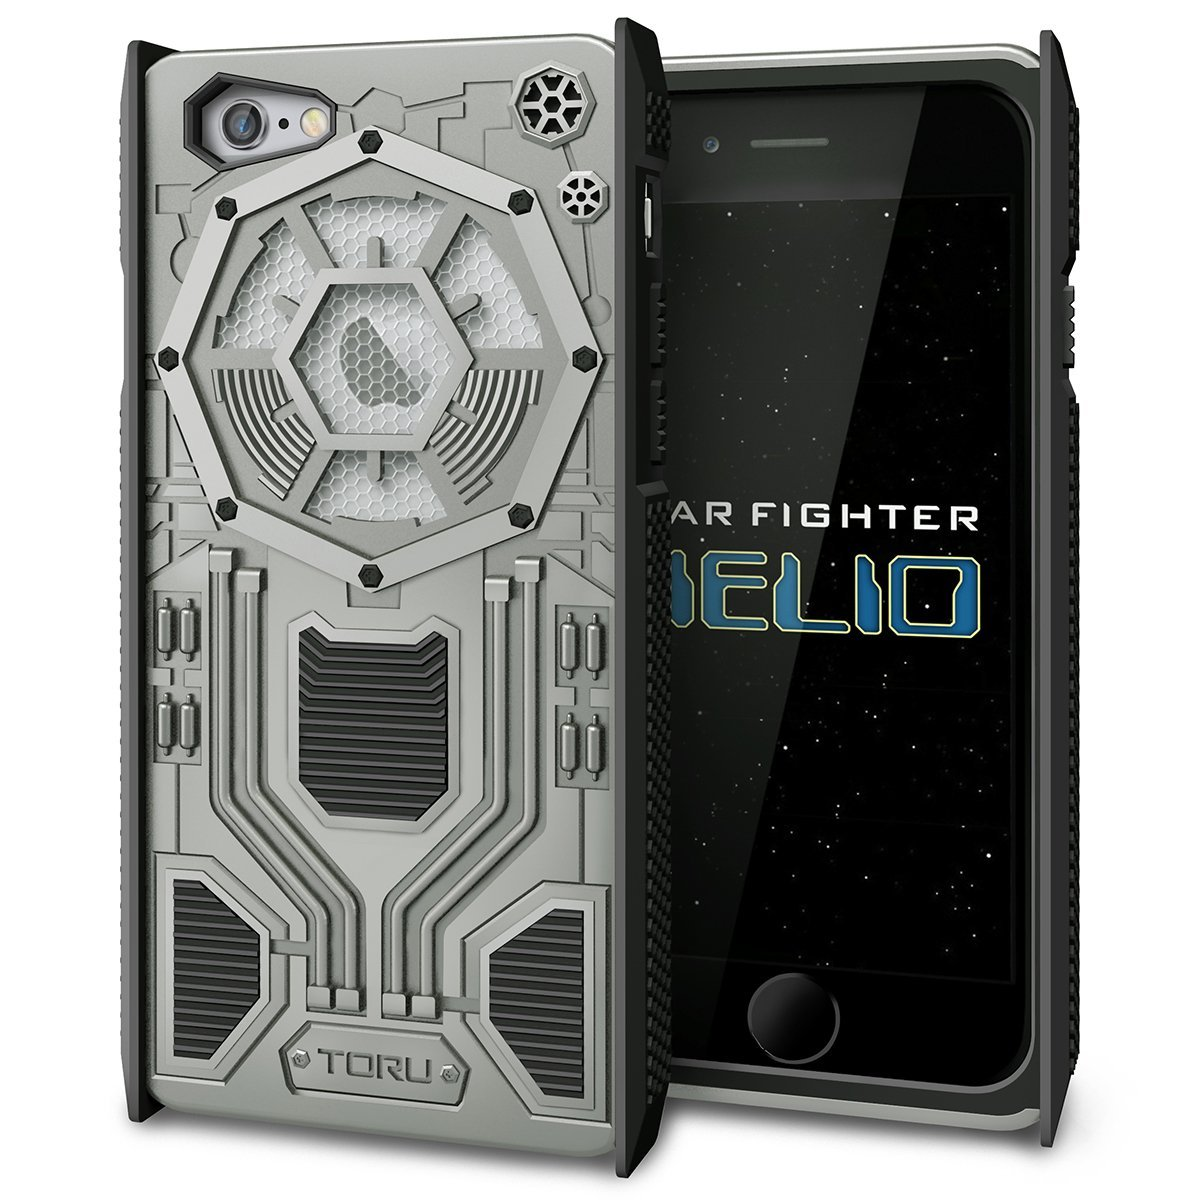 huge selection of 3f1e7 ae1c7 Buy iPhone 6S Case, TORU [STAR FIGHTER HELIO] Heavy Duty Shockproof ...